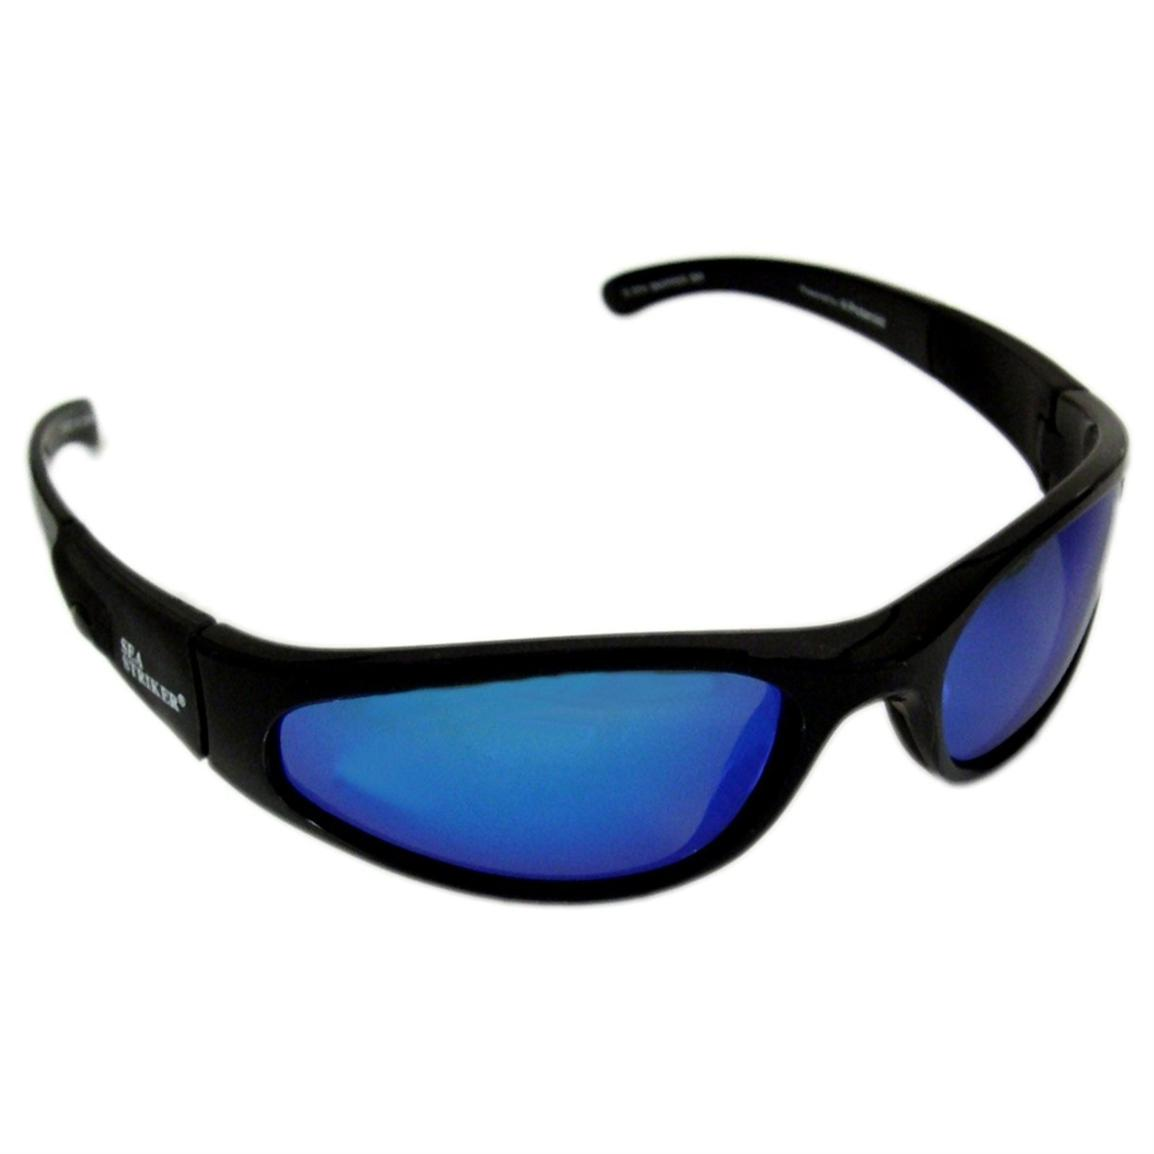 Sea Stringer Skipper Sunglasses, Blue